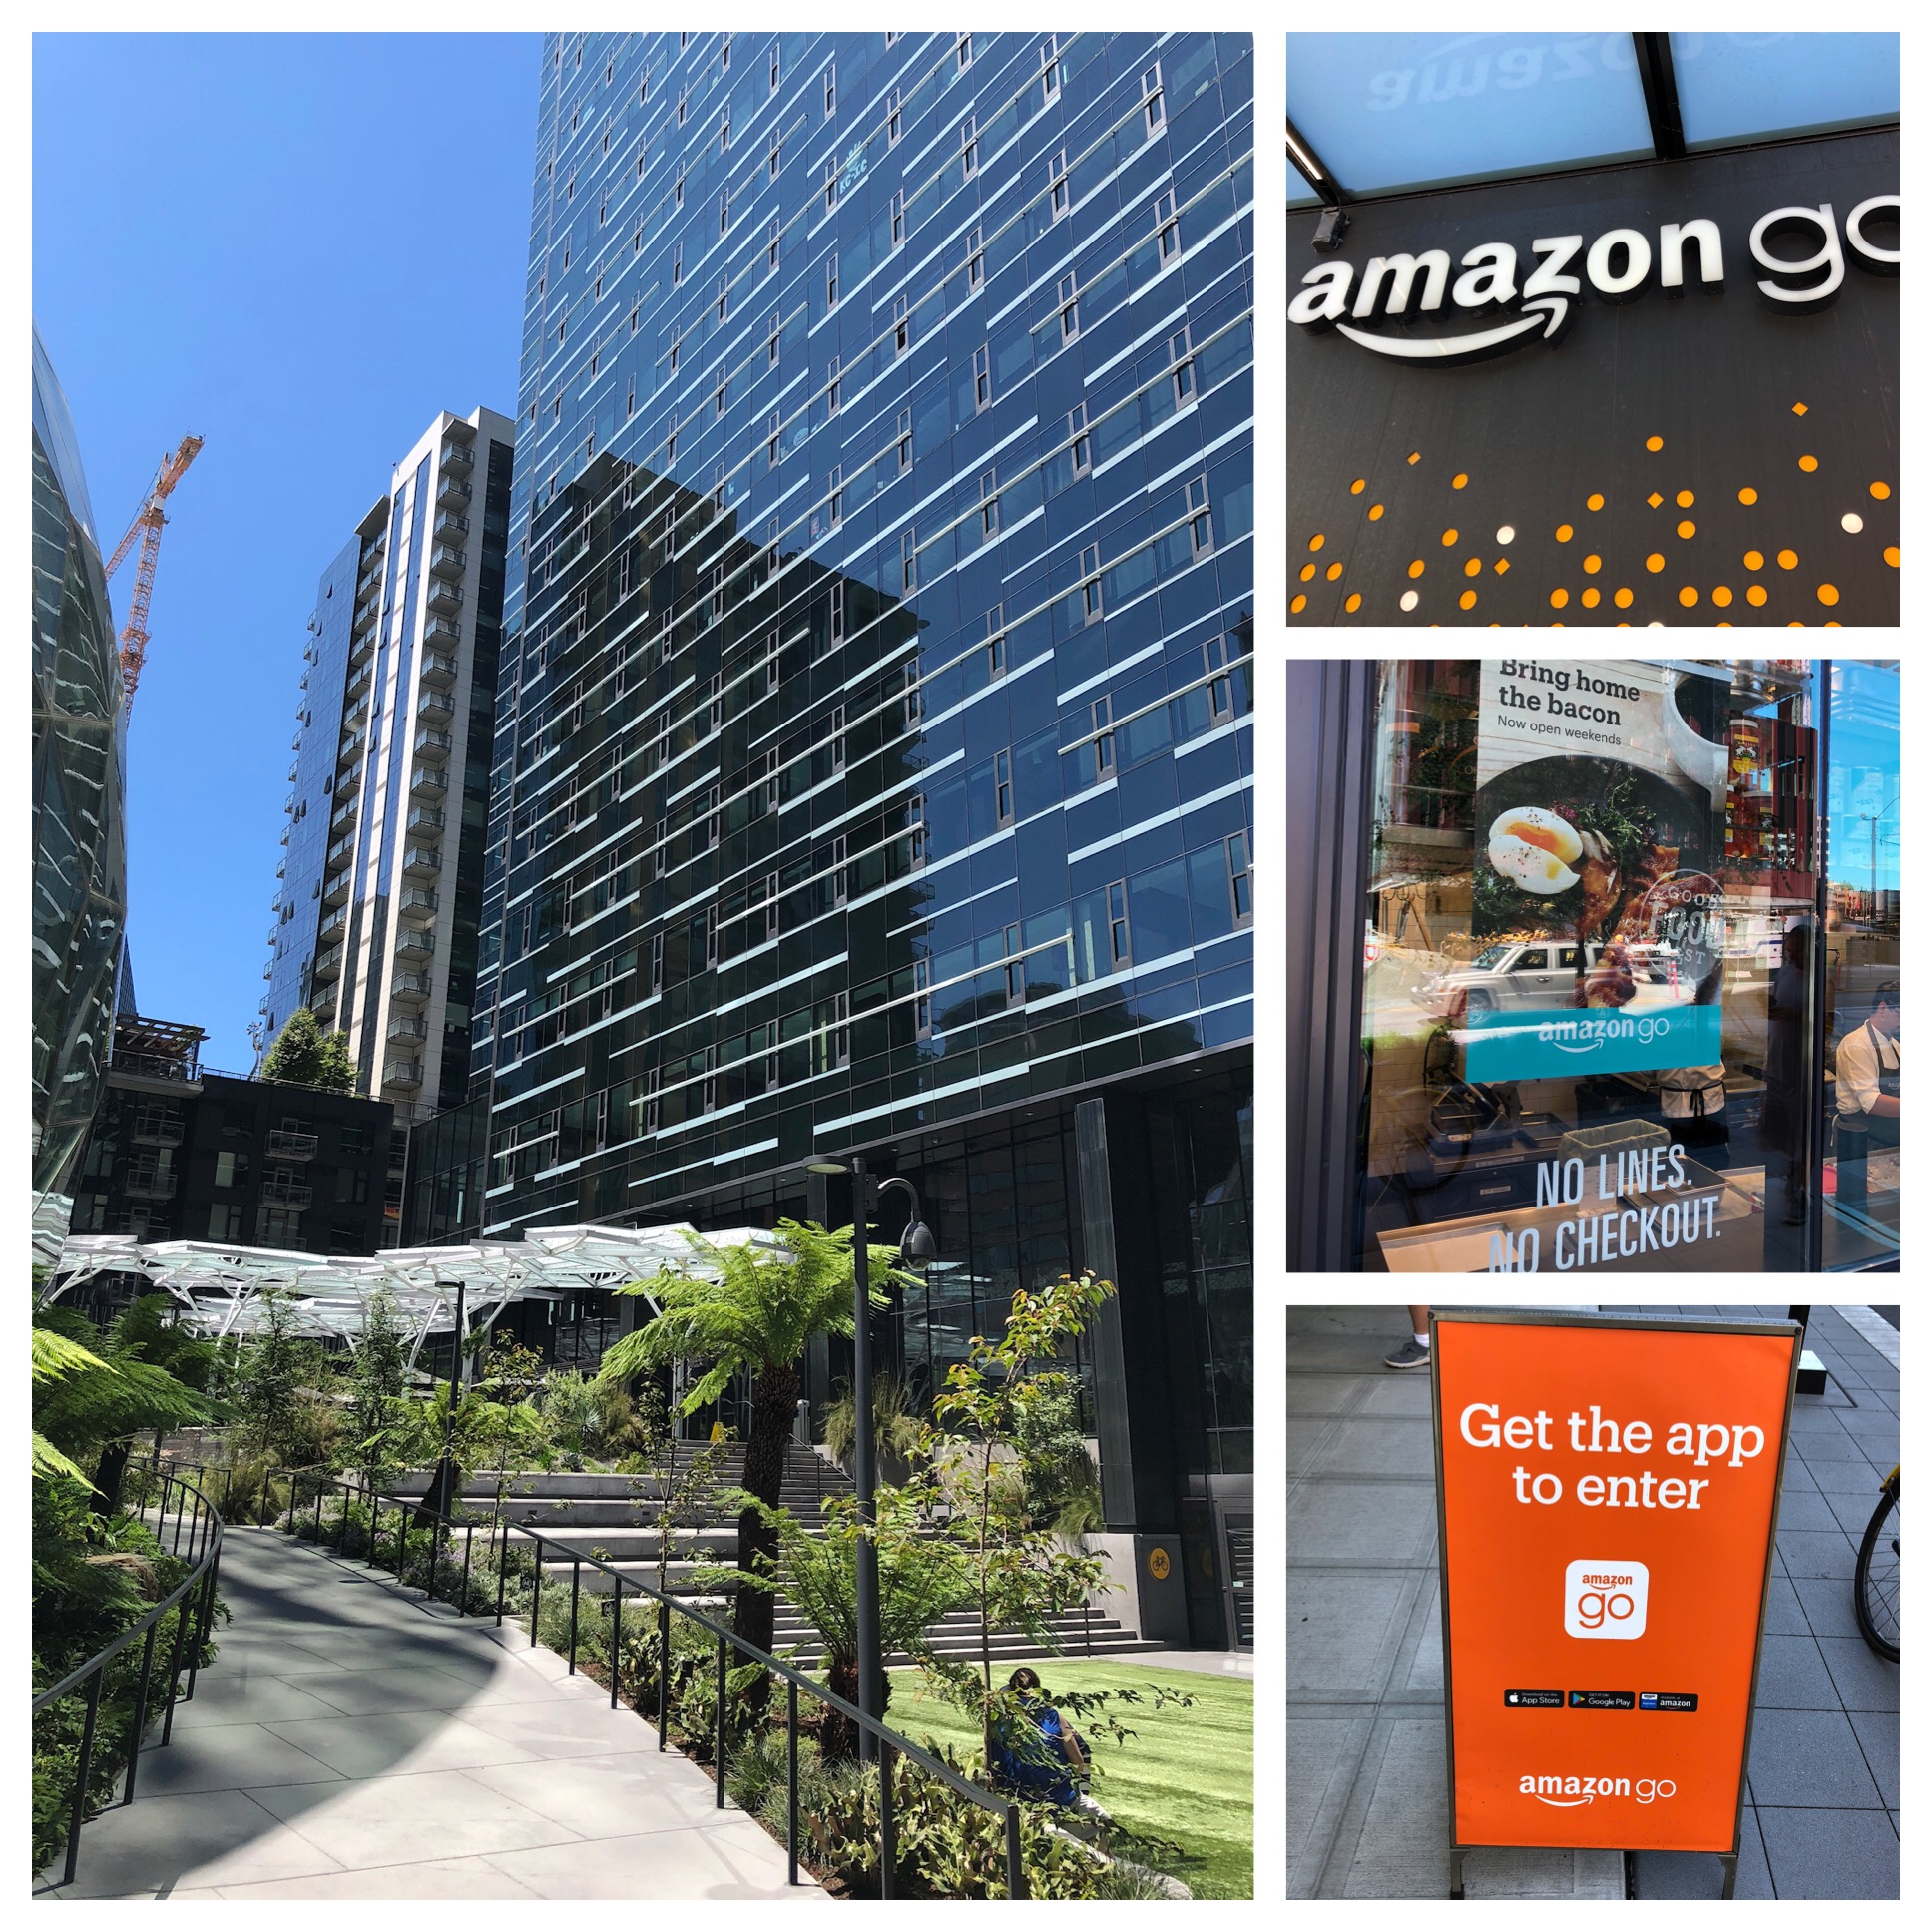 Main entrance to Amazon Headquarters and Amazon Go grocery.